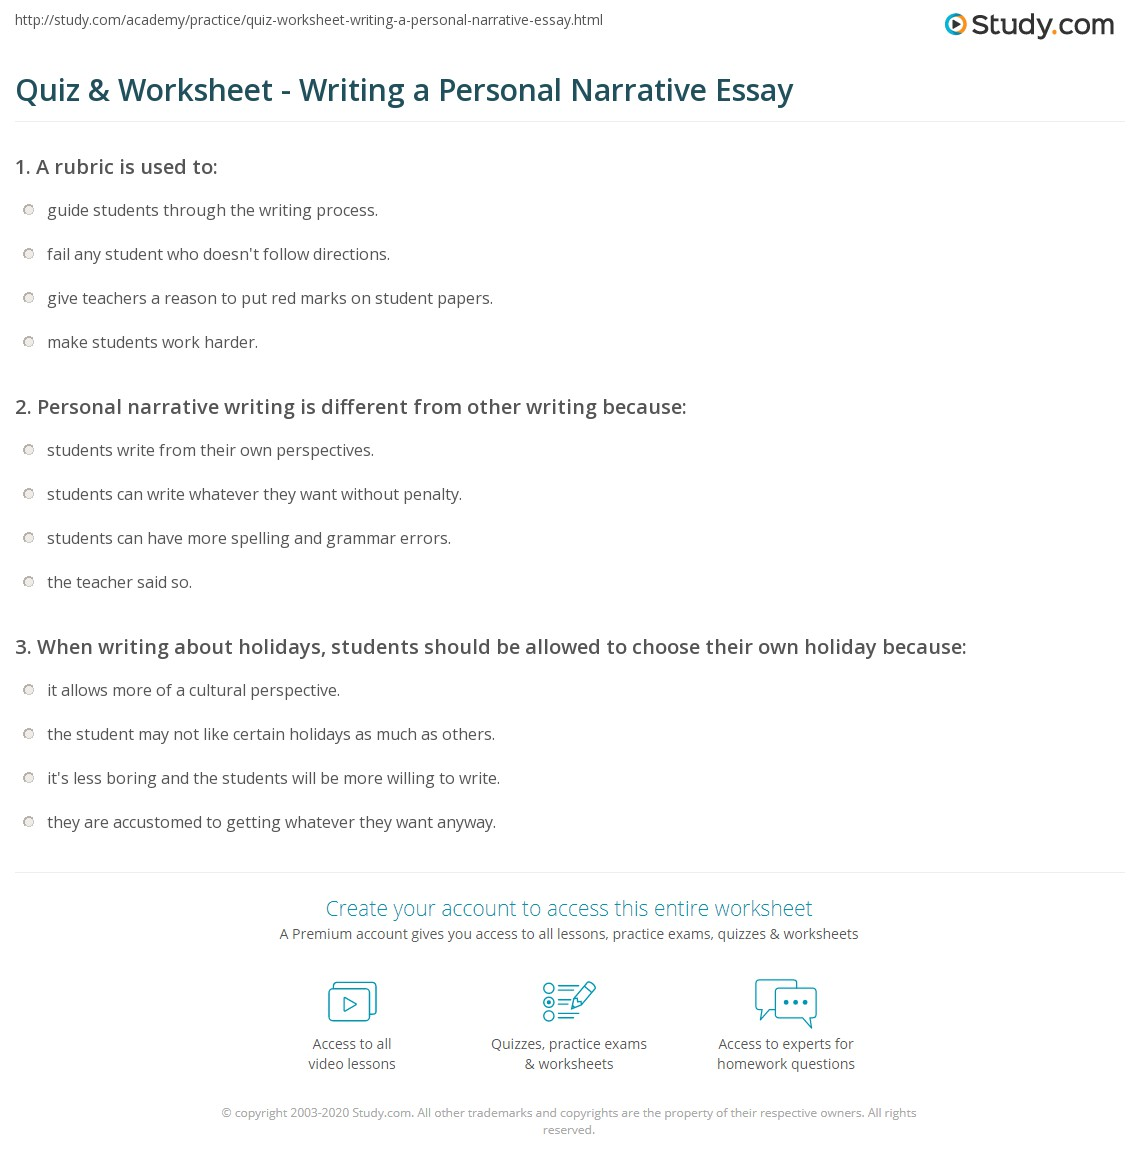 Examples of good personal narrative essays